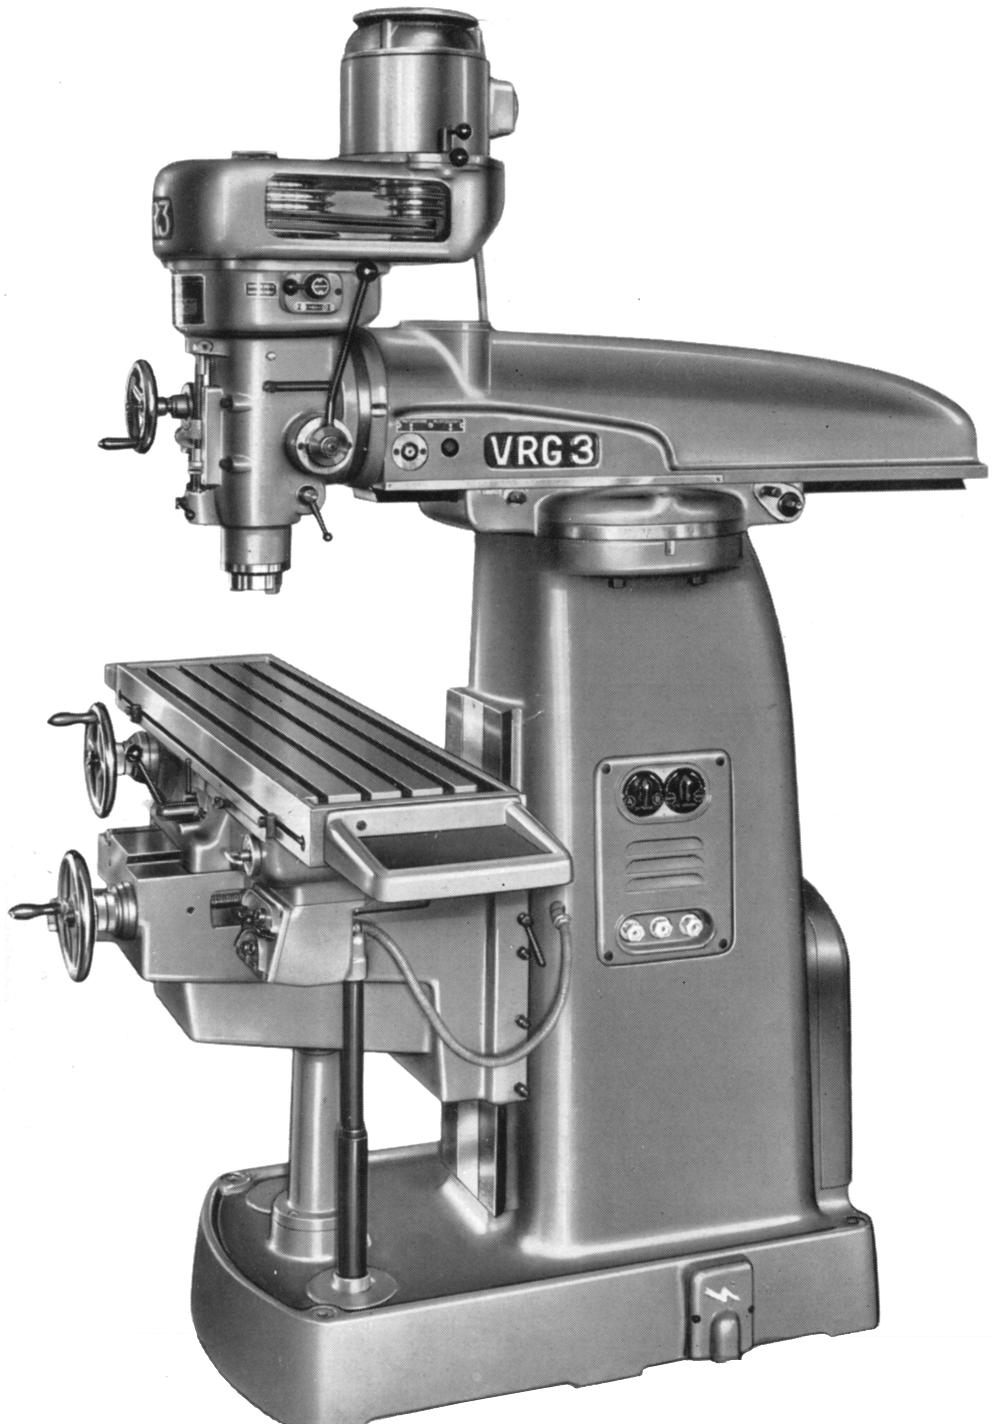 Conventional Milling Machine : Diagram of conventional milling machine drill